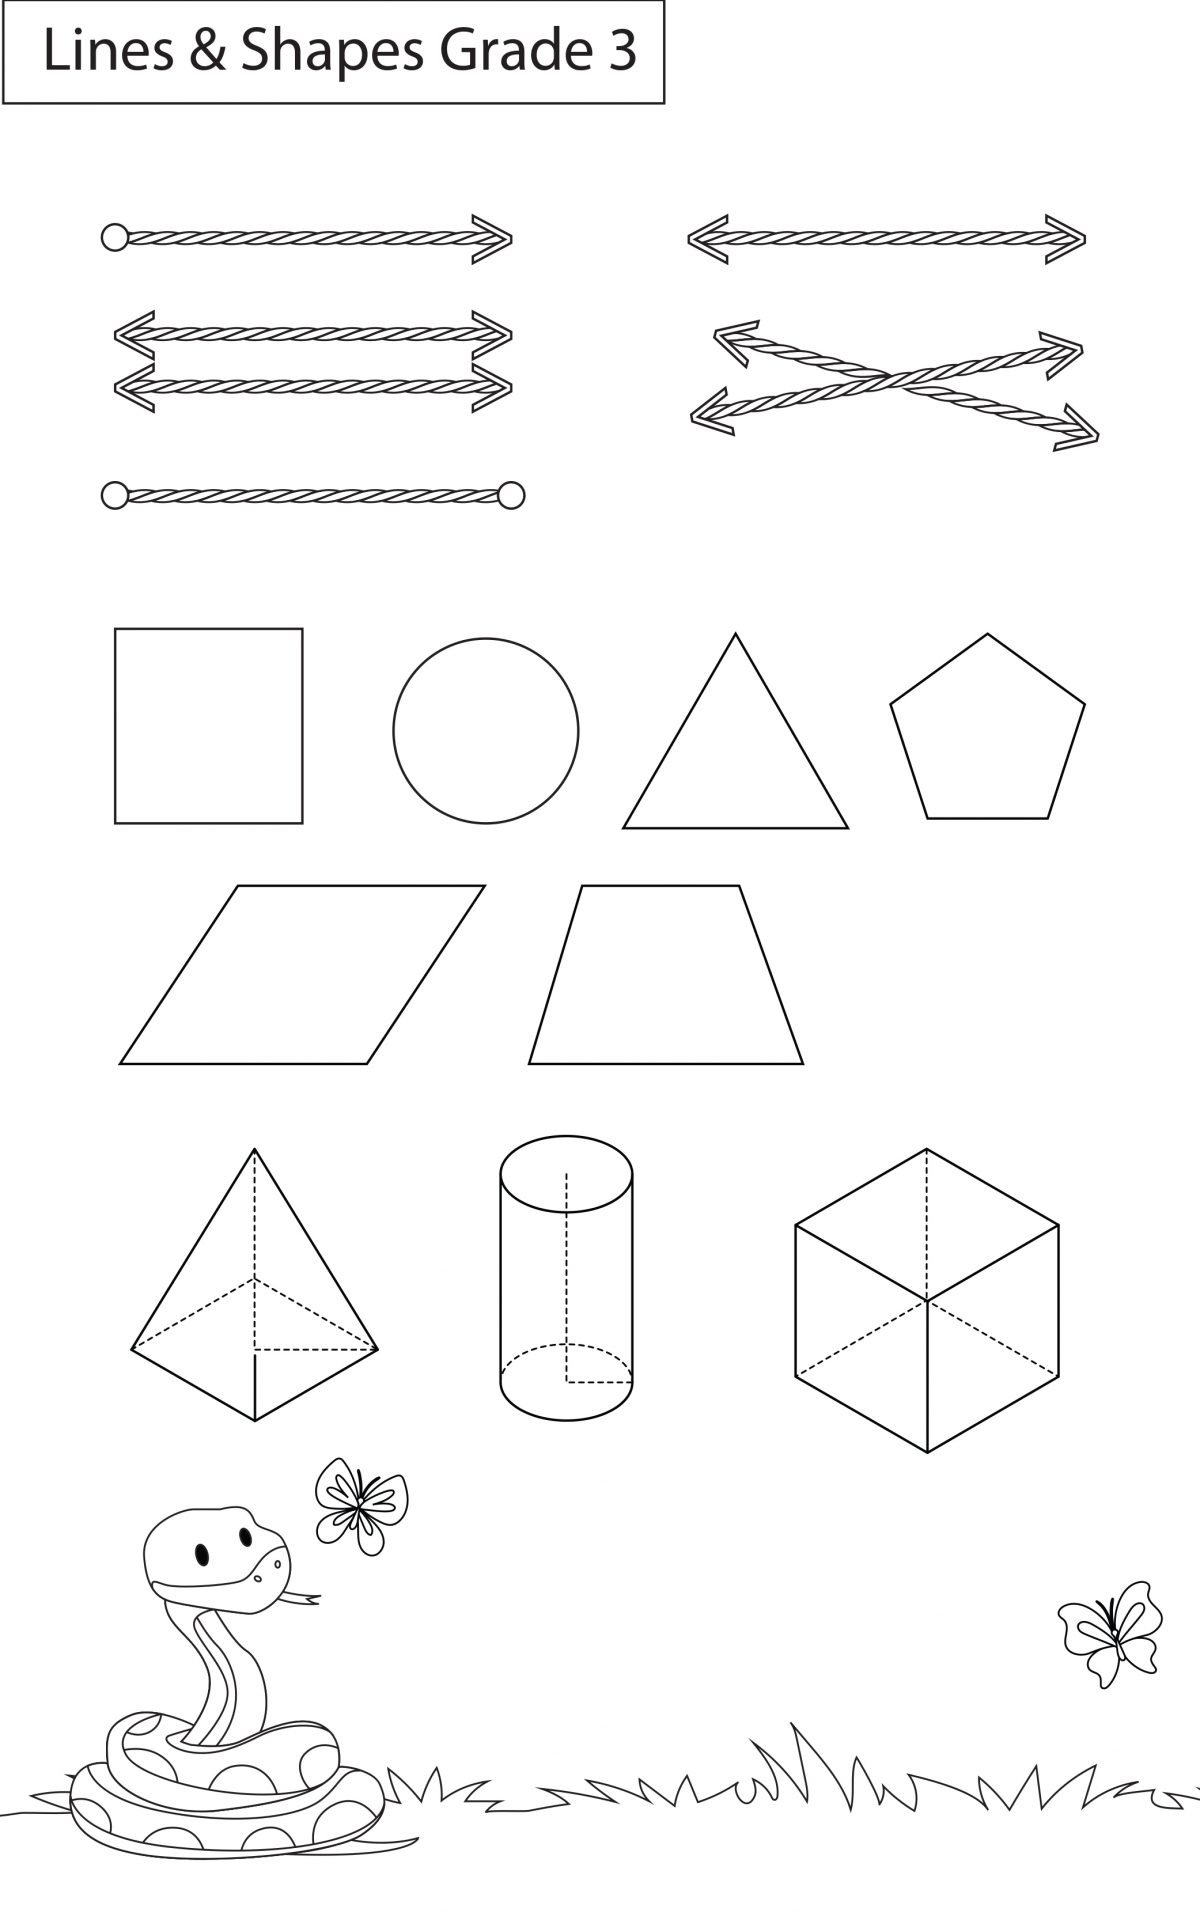 Maths Worksheets Grade 3 Lines And Shapes Workbook